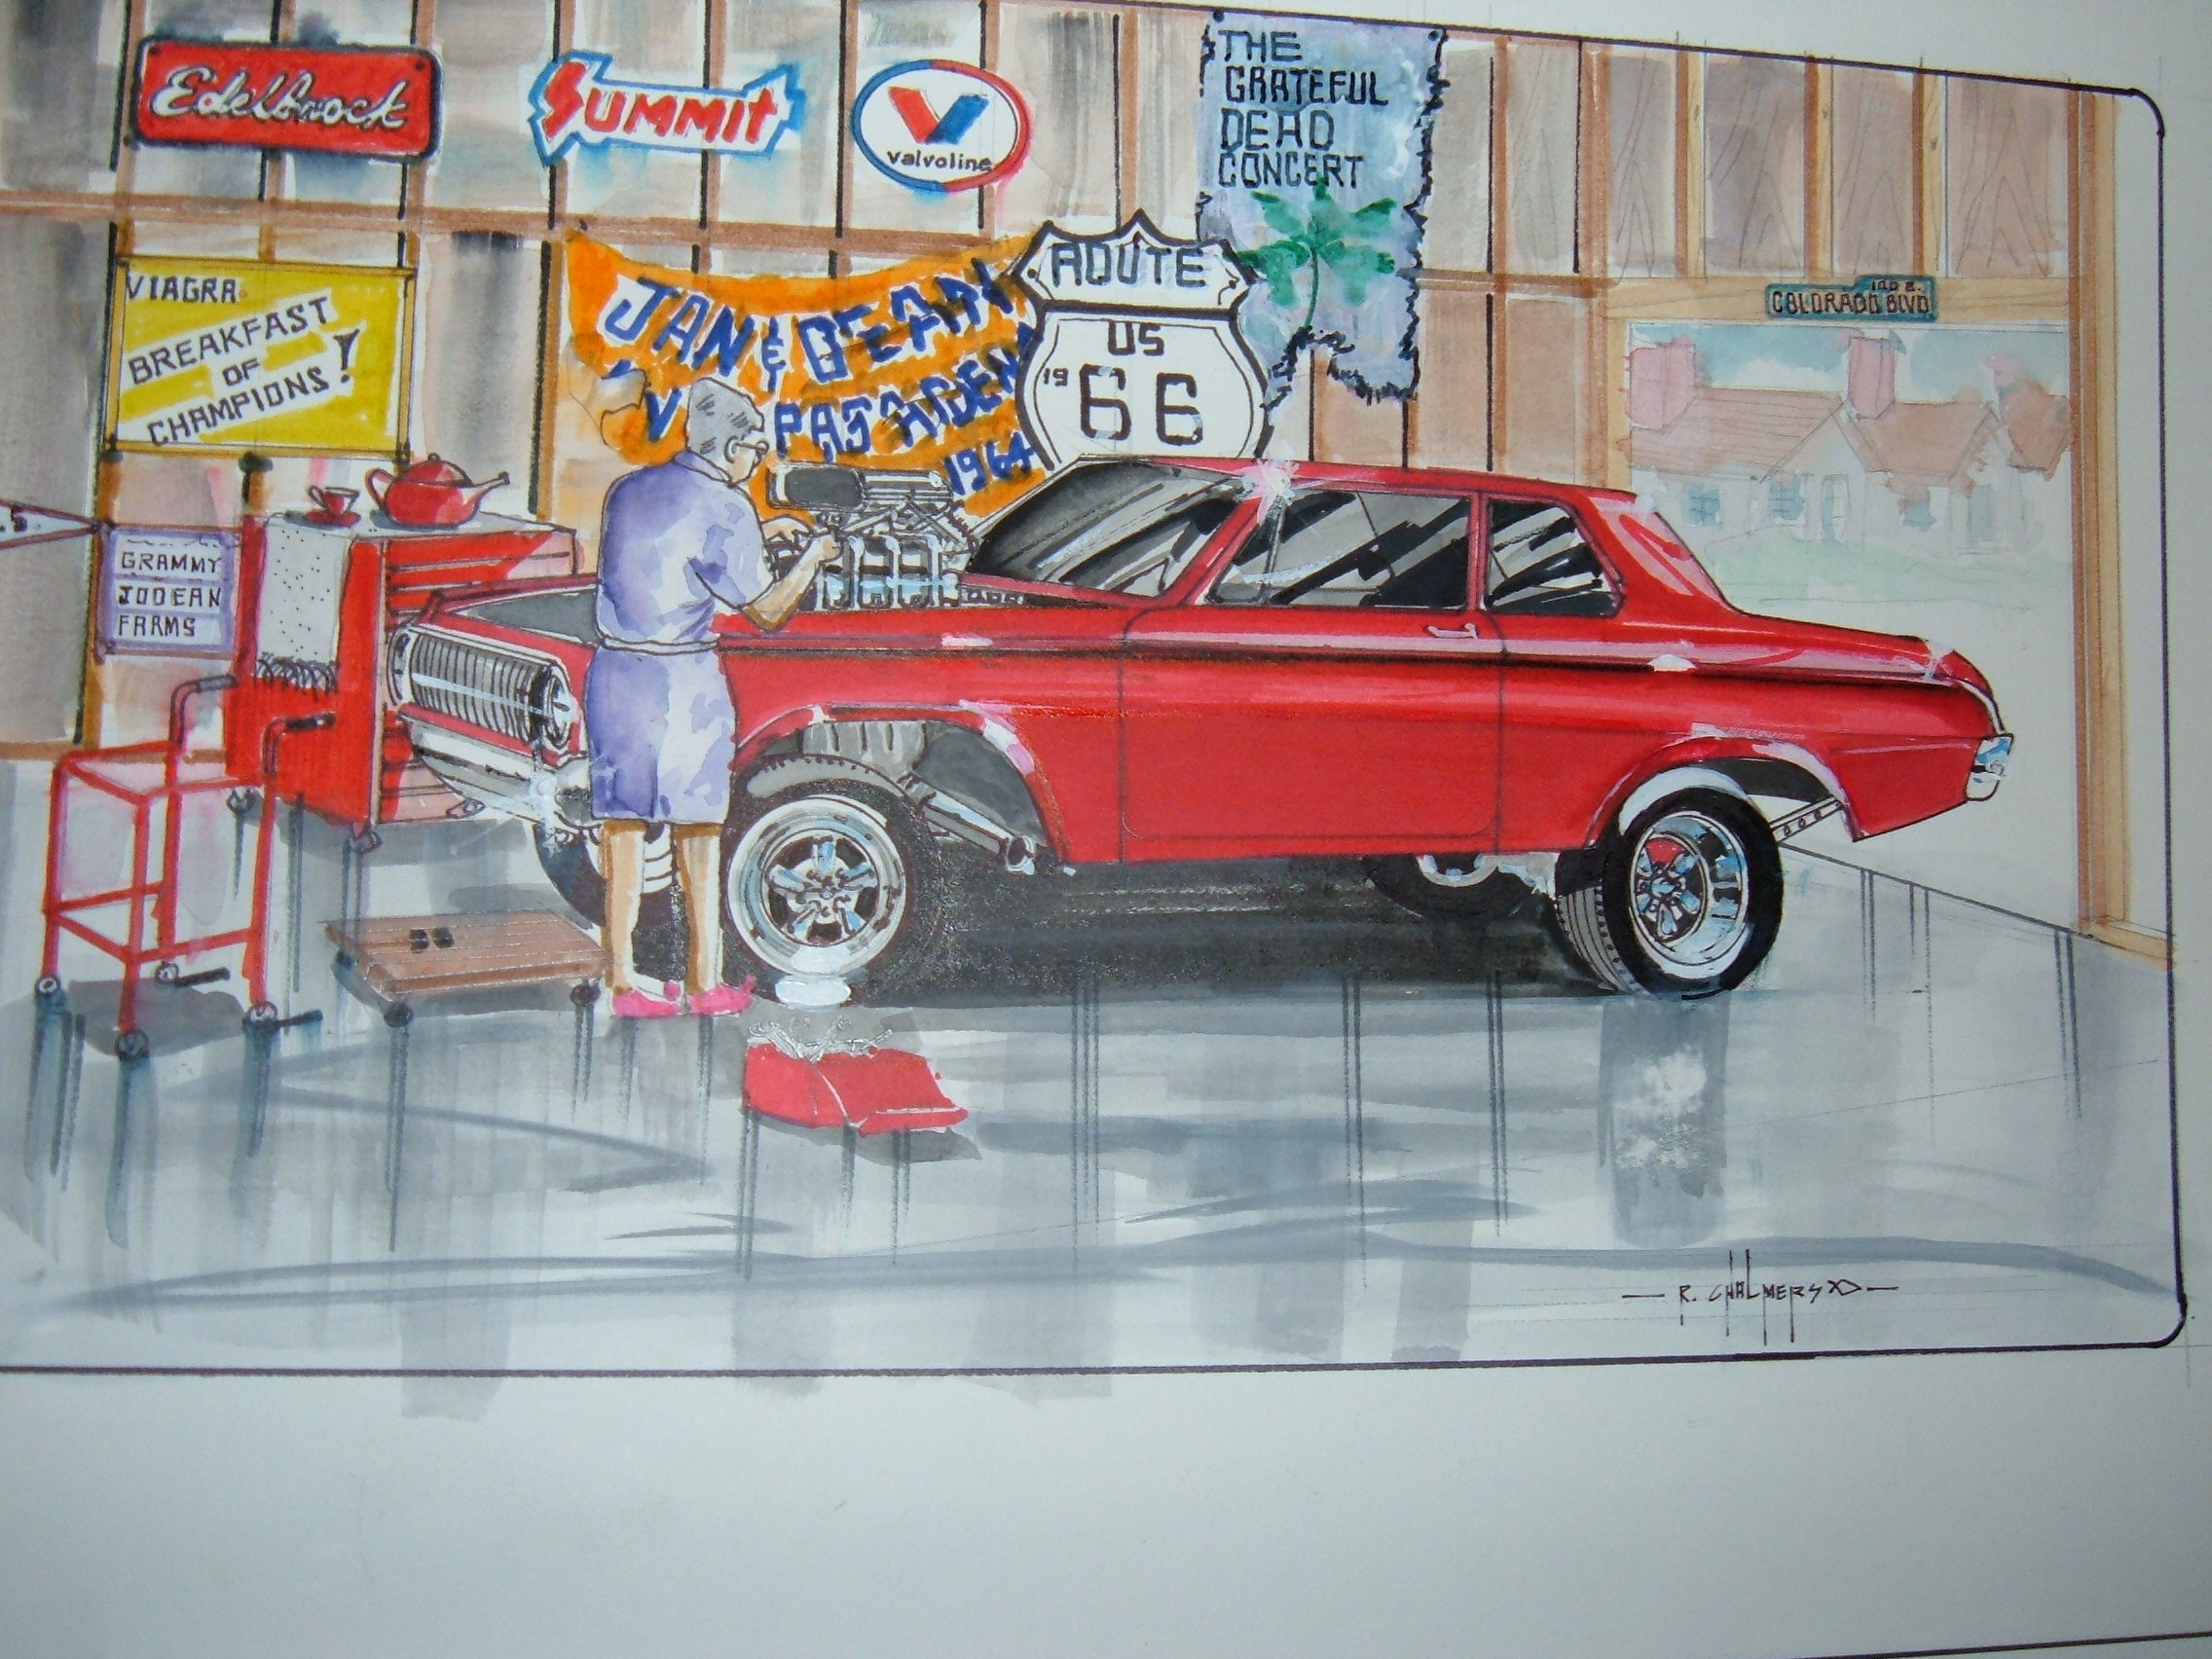 Click image for larger version  Name:Ron's Art 008.jpg Views:198 Size:715.9 KB ID:54133